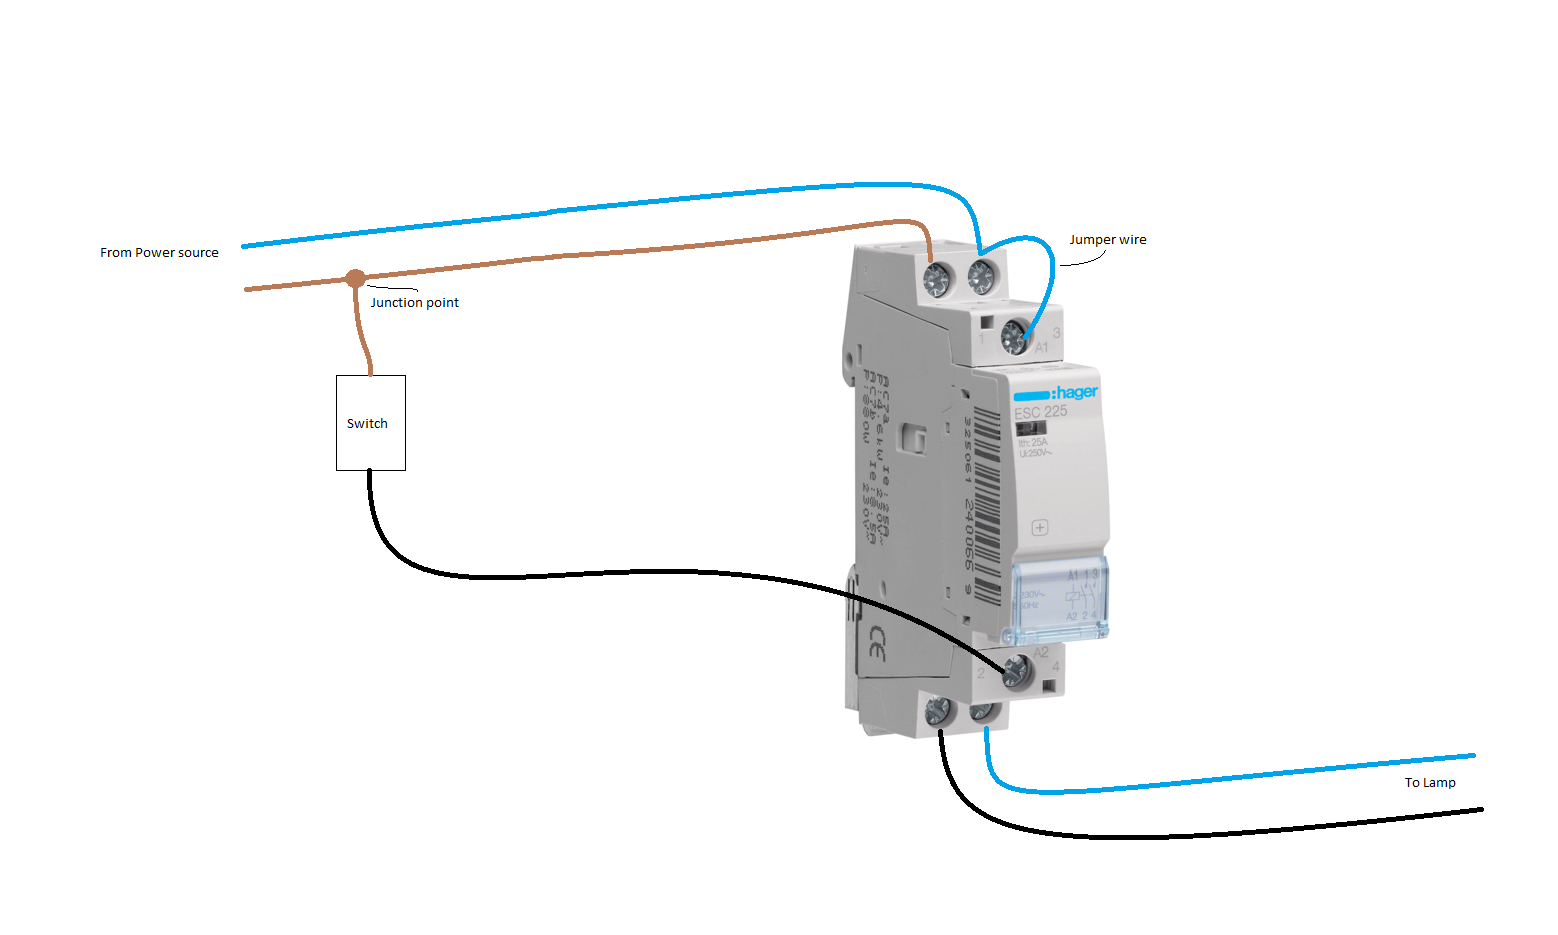 I Need The Wiring Diagram To Connect Hager 225 I Am An Electrician And Need The Wiring Diagram For The Telerupteur